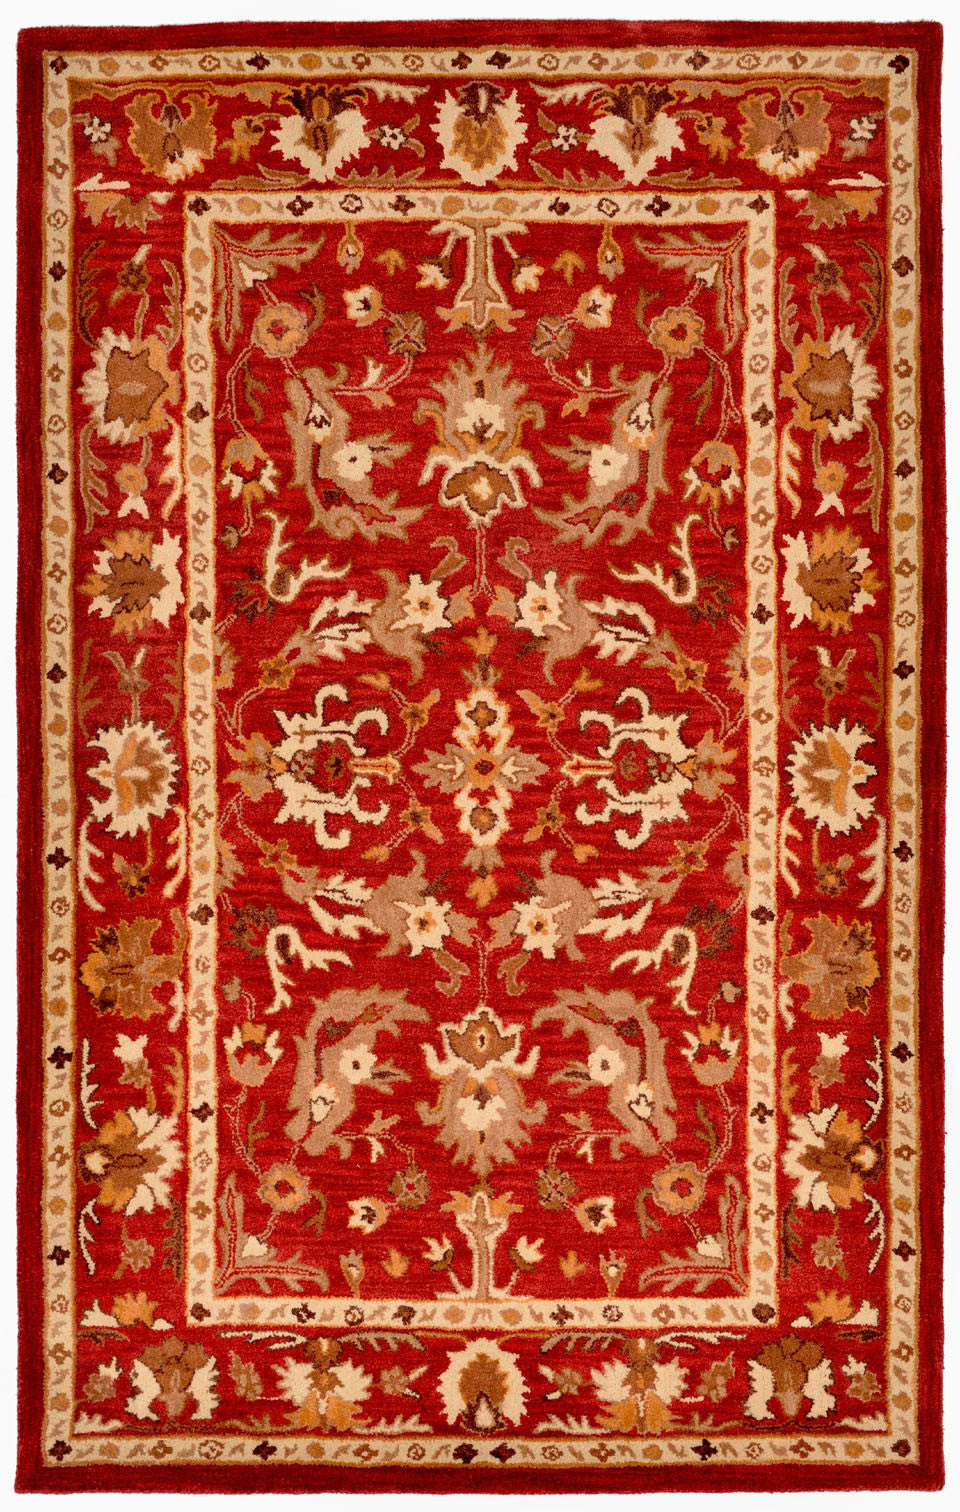 Trans-Ocean Imports PTA23907724 Petra Collection Red Finish Indoor Rug from Trans-Ocean